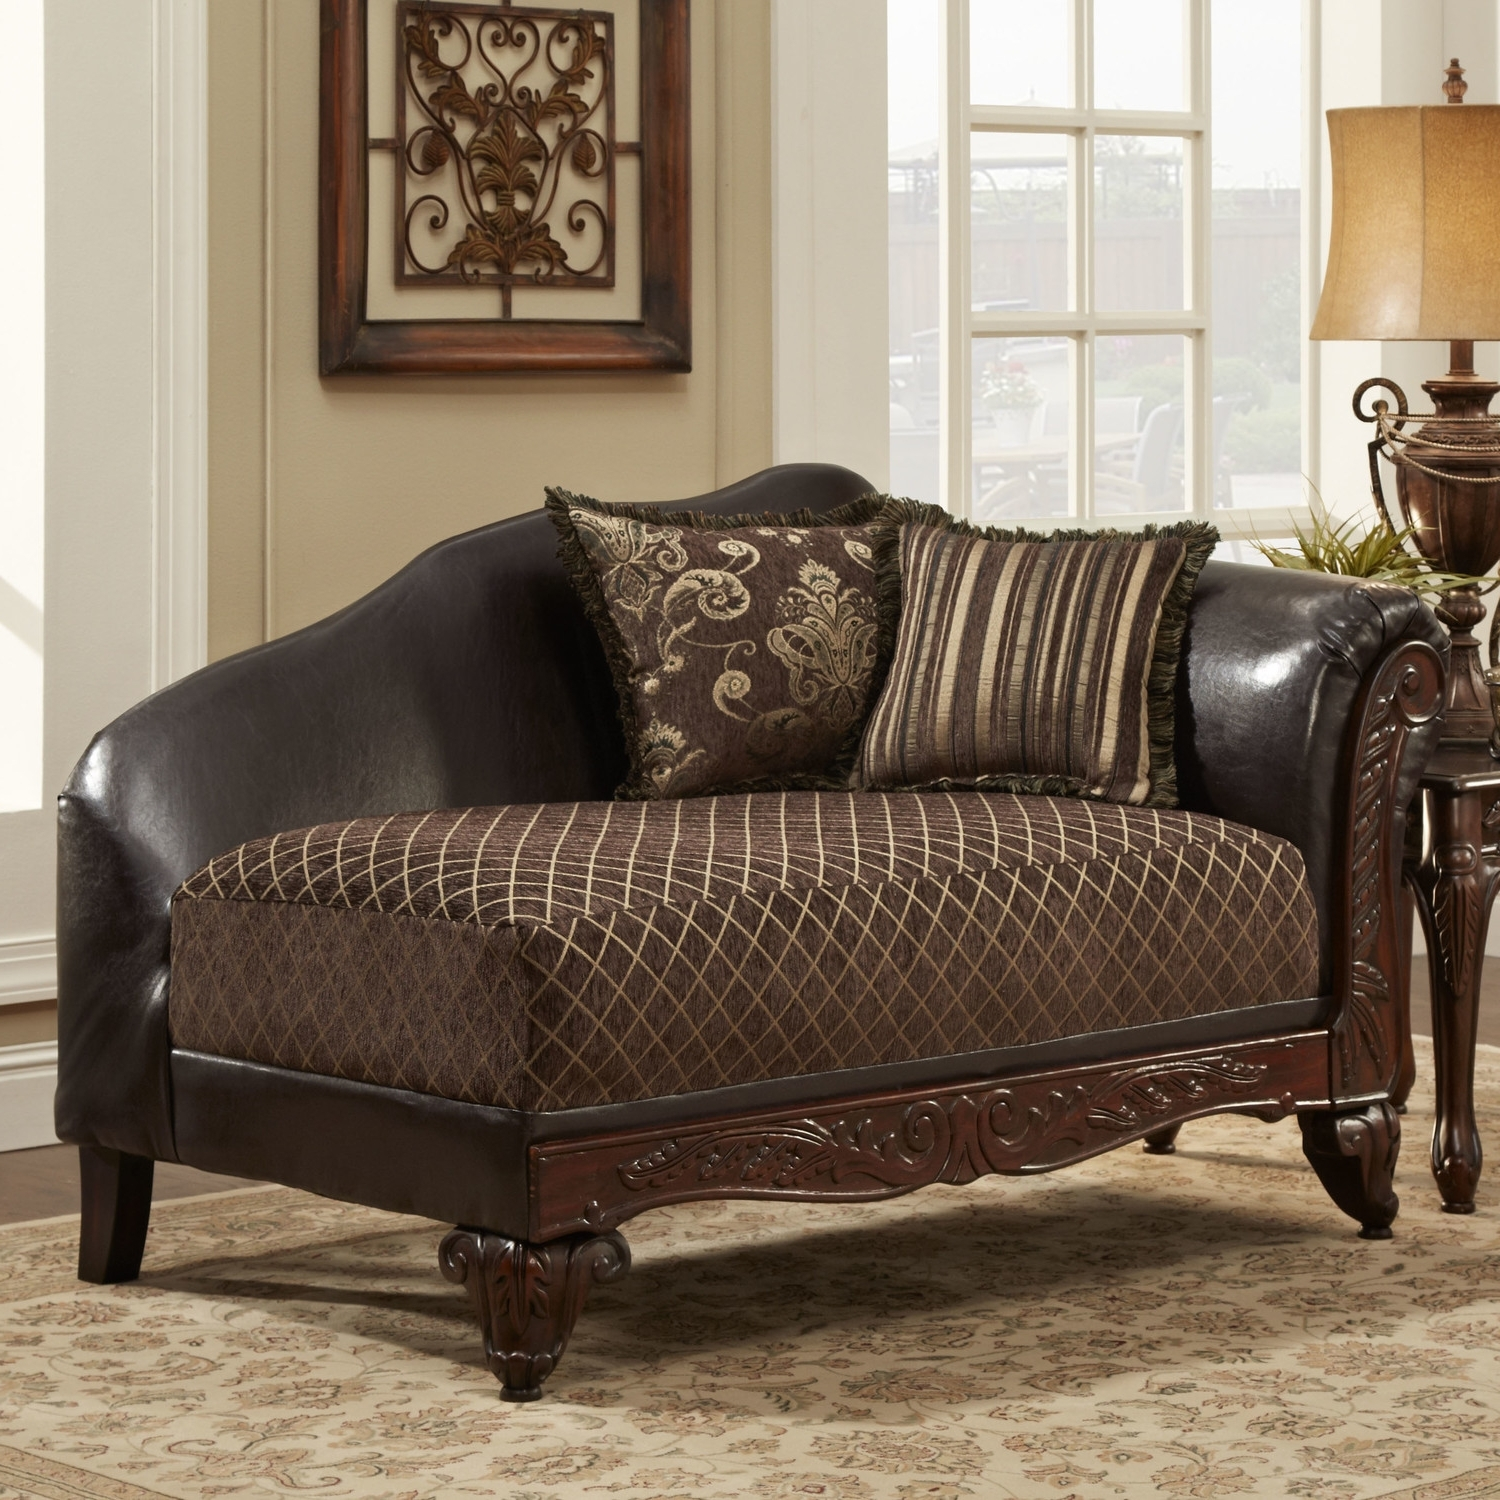 Latest Wonderful Brown Leather Chaise Lounge With Traditional Chaise Within Brown Leather Chaises (View 12 of 15)